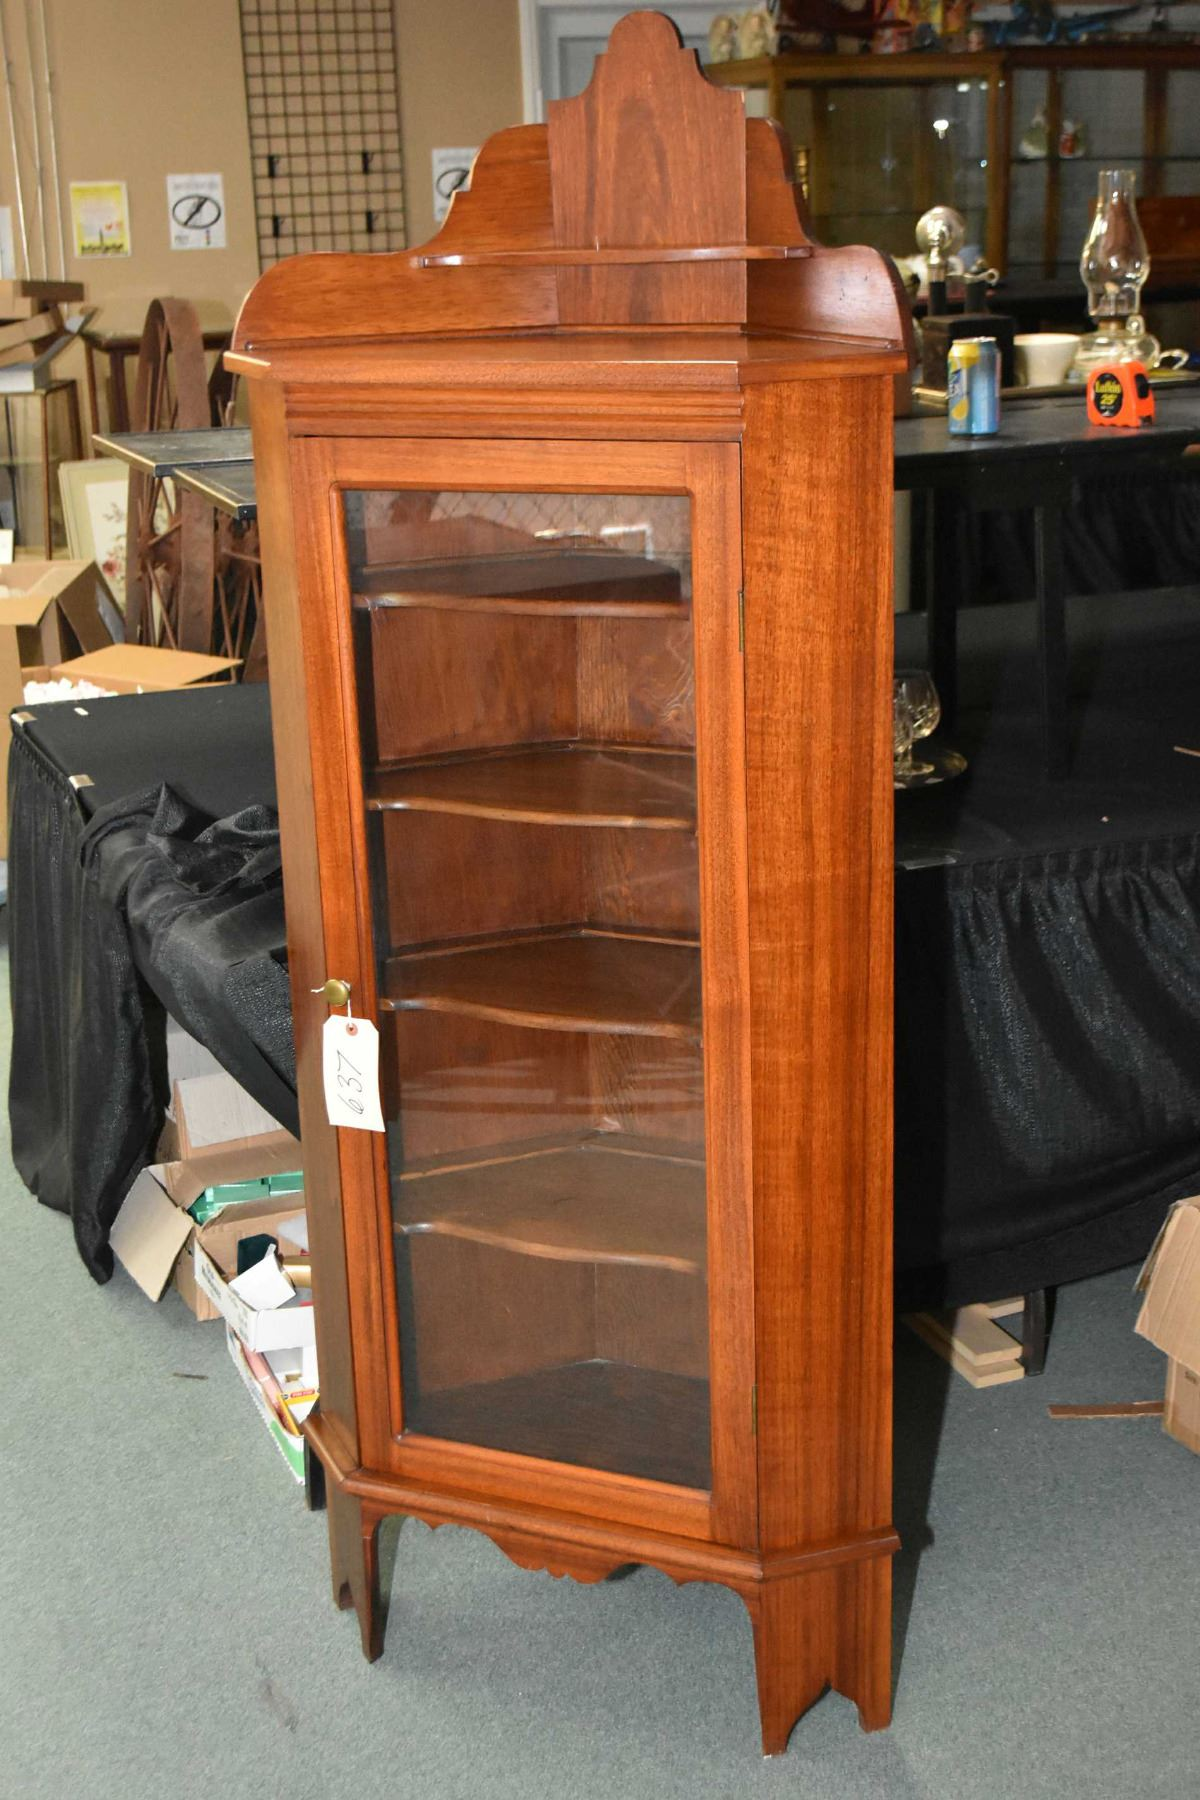 Image 1 : Vintage single door mahogany corner display cabinet with small  display shelf on backboard - Vintage Single Door Mahogany Corner Display Cabinet With Small